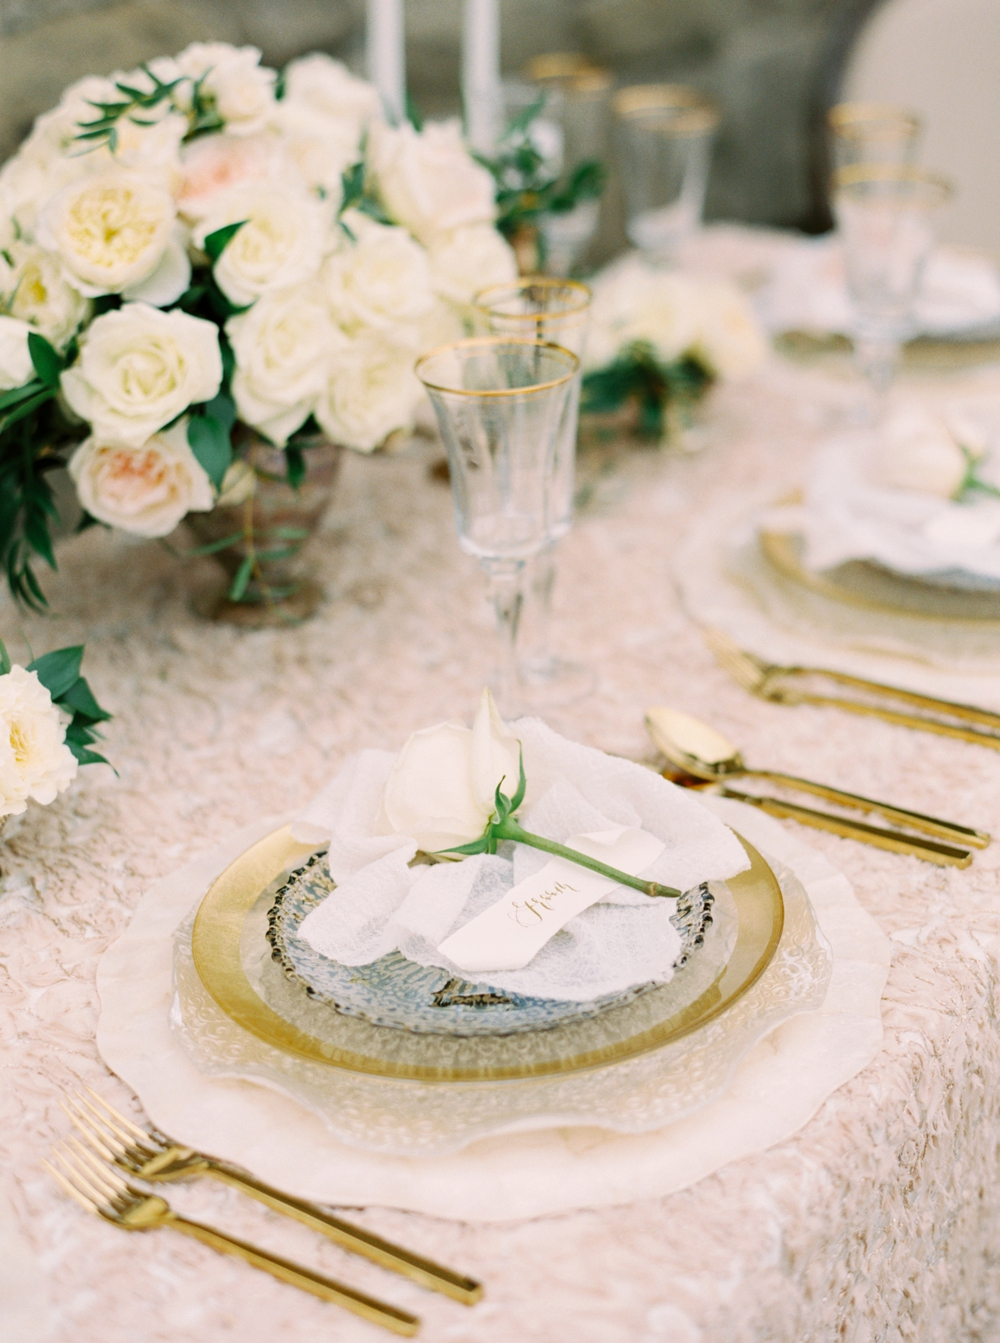 Calgary Wedding Photographers | Julianne Young Weddings | The Well Styled Life | Table Decor